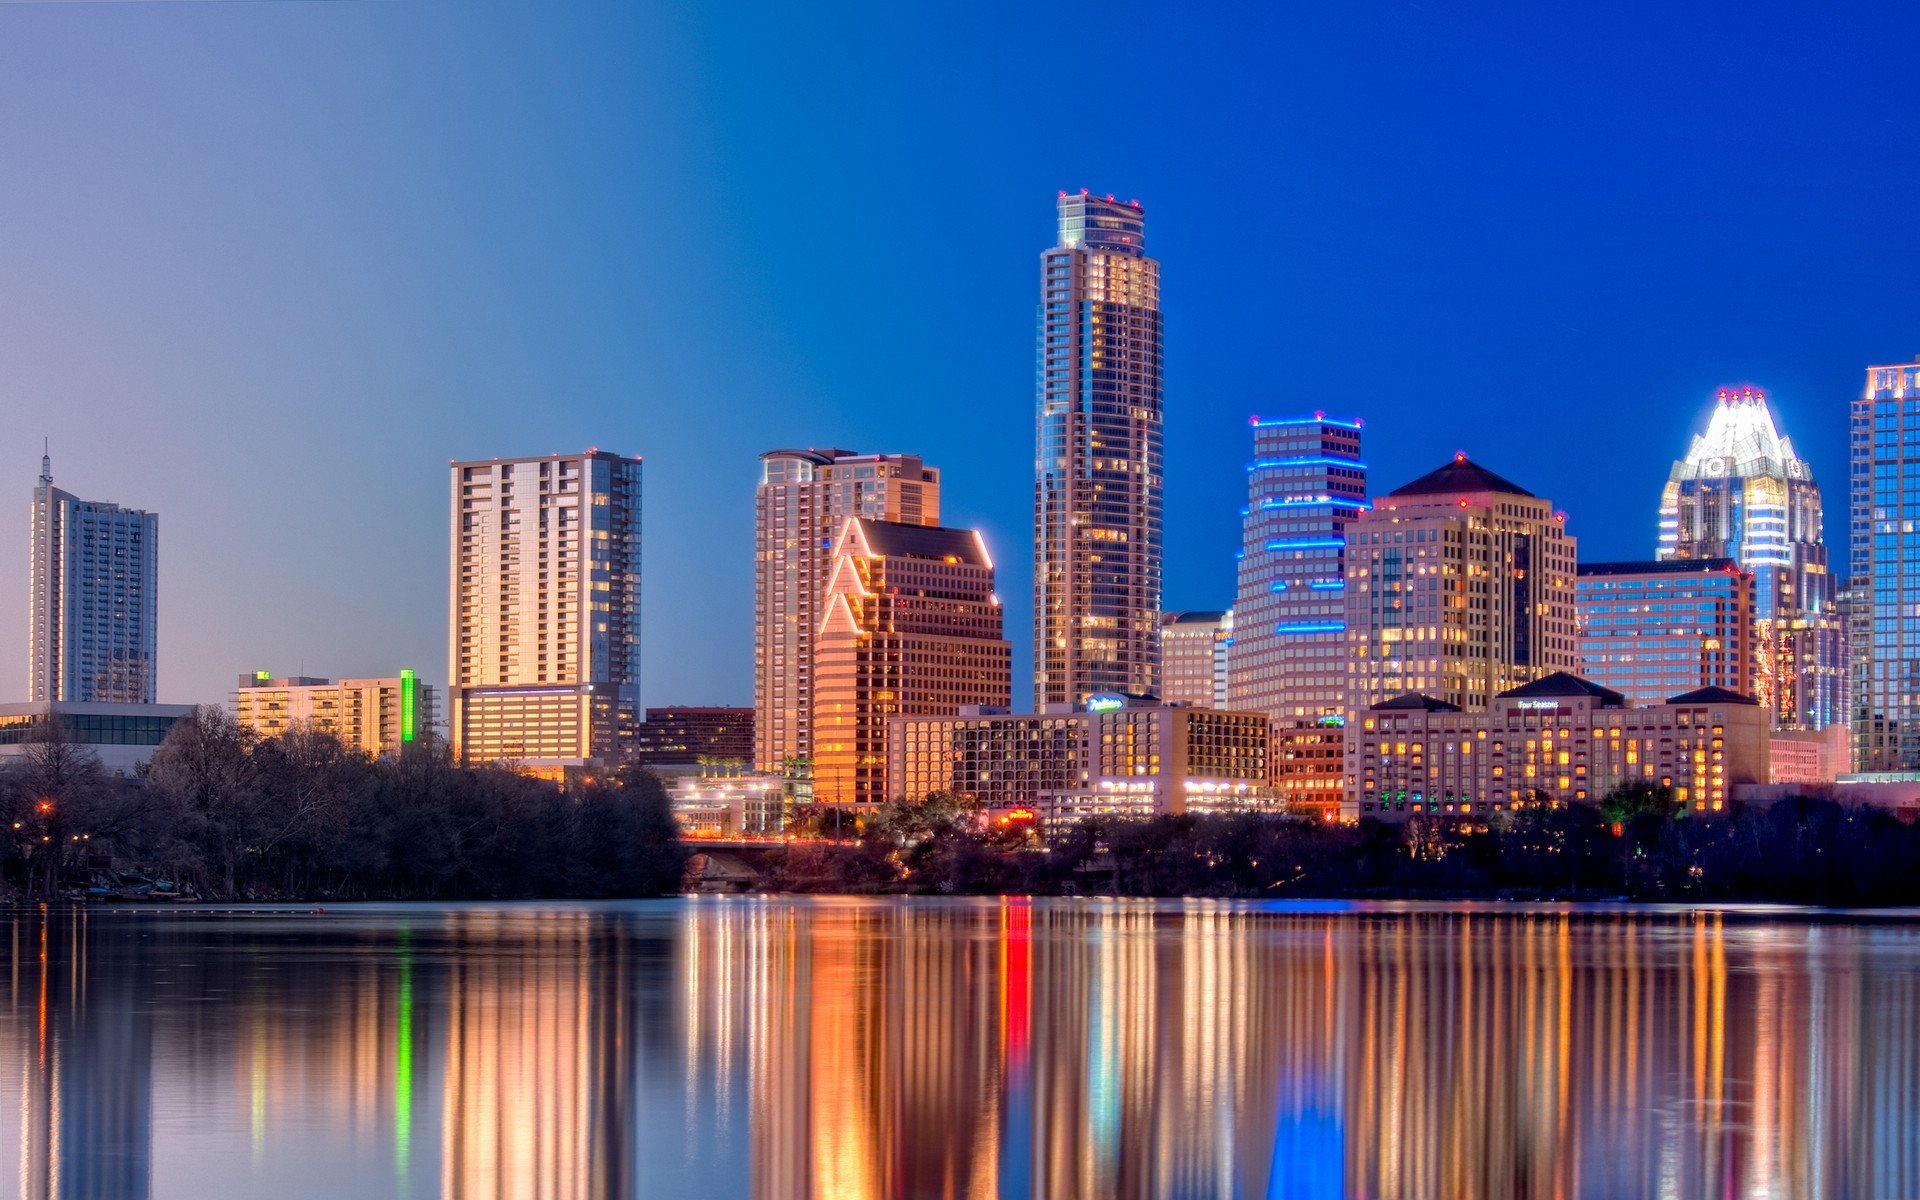 1920x1200 austin texas wallpaper